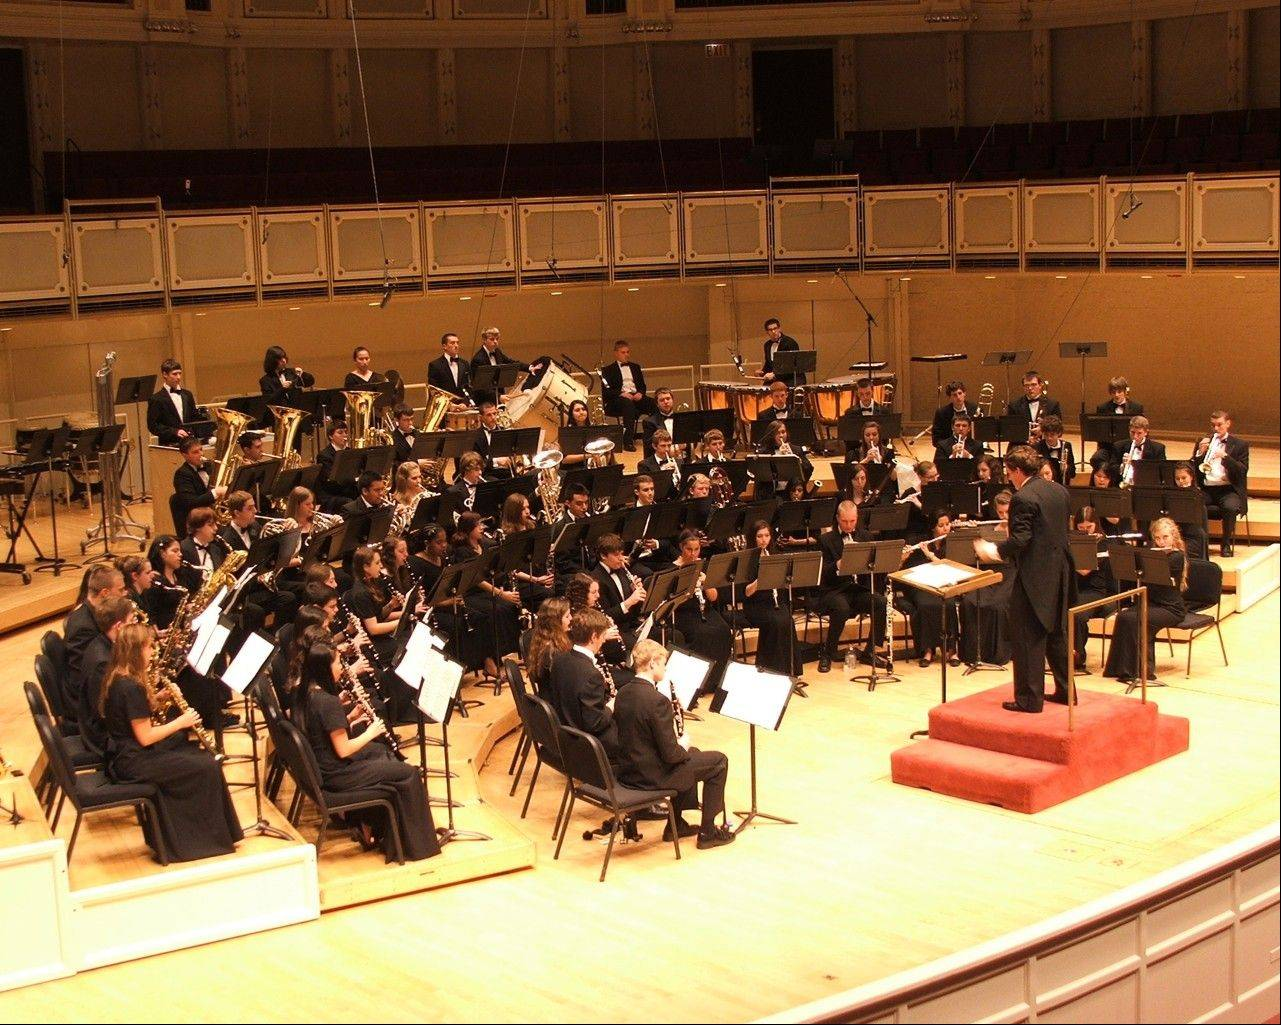 The Buffalo Grove High School Symphonic Band performs at Orchestra Hall in Chicago in March 2012. This is the home of the Chicago Symphony Orchestra and was a milestone performance for both Band Director Ed Jacobi and the Buffalo Grove Symphonic Band.